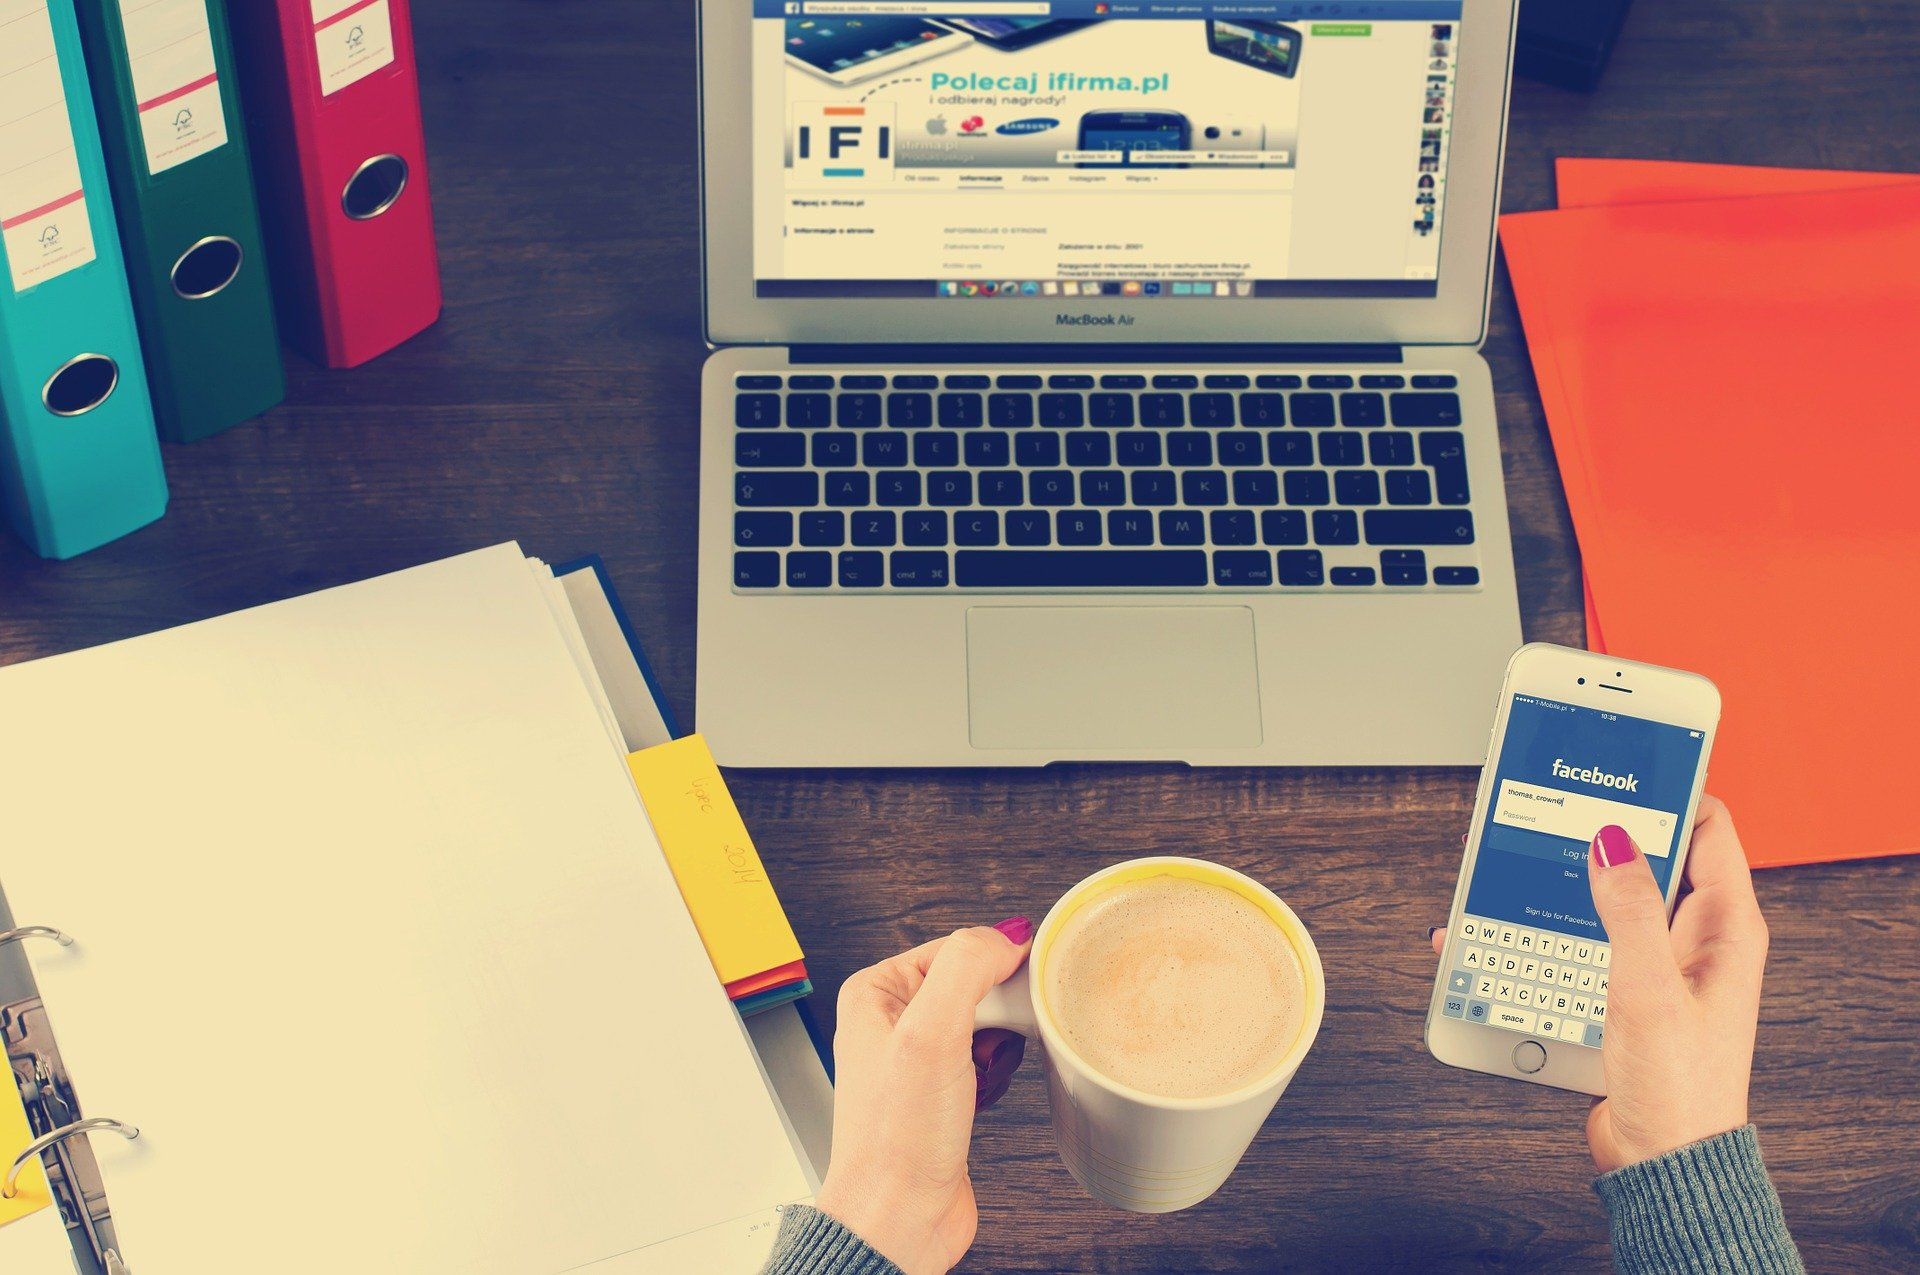 Woman holding phone and coffee sitting at desk with folders and laptop.